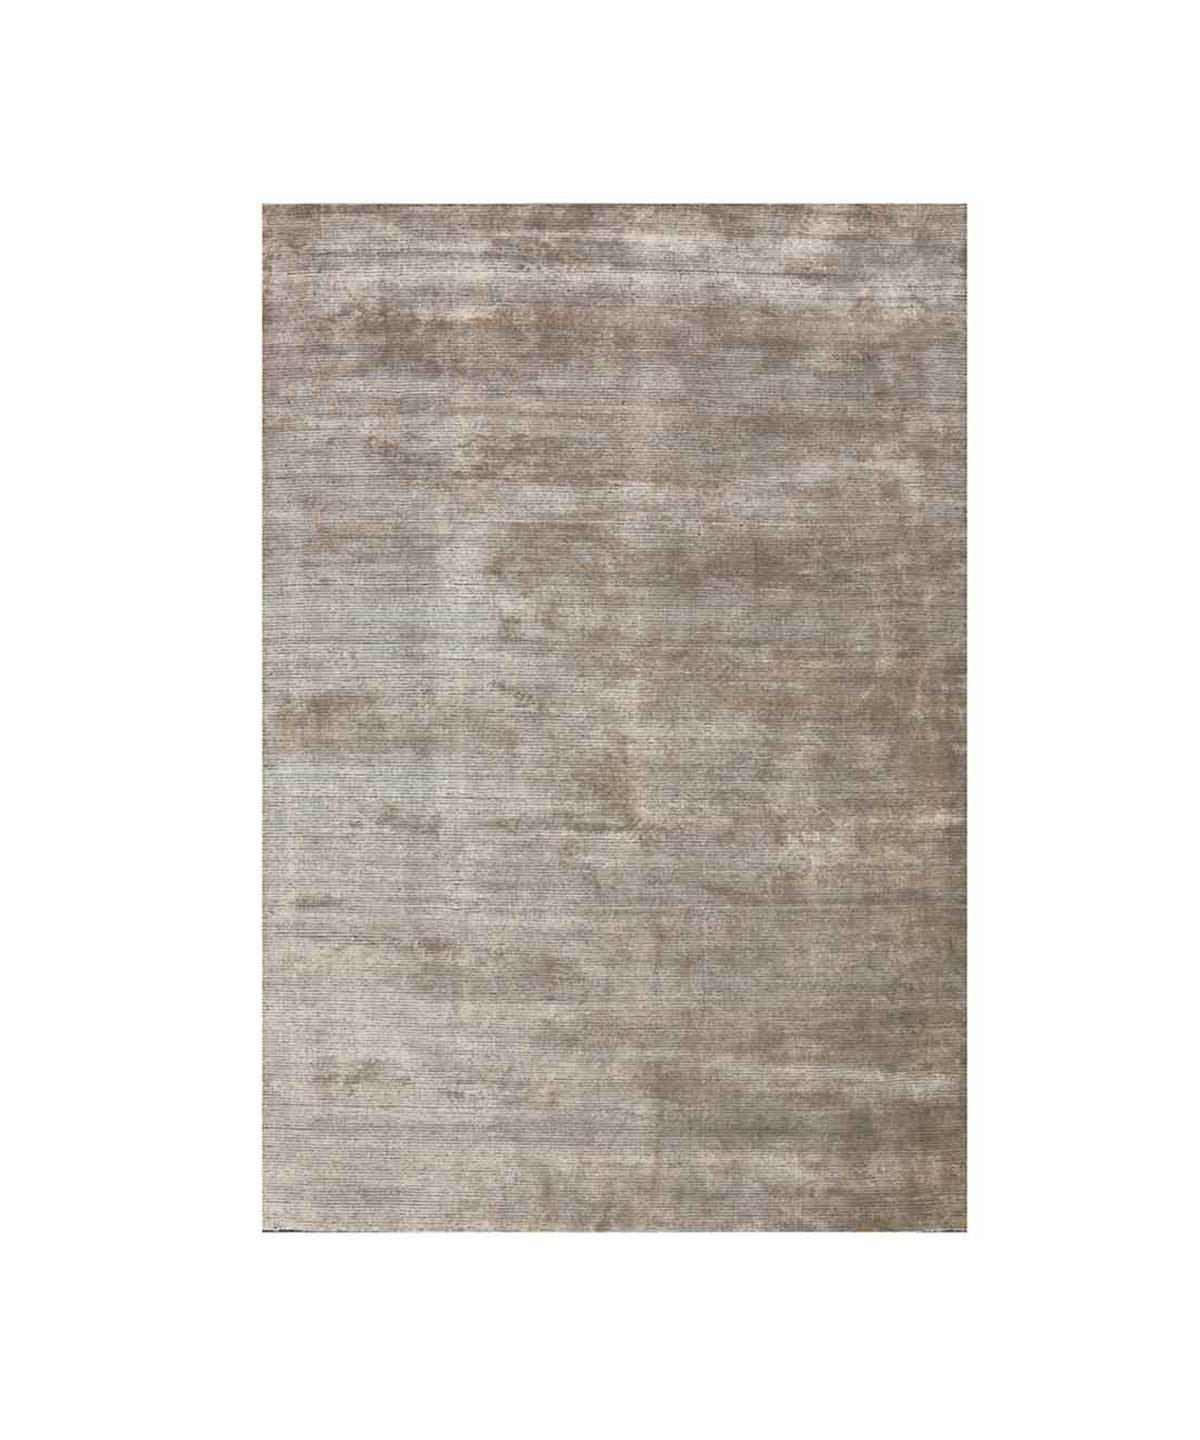 Siesta Rug in Beige by Loloi | TRNK